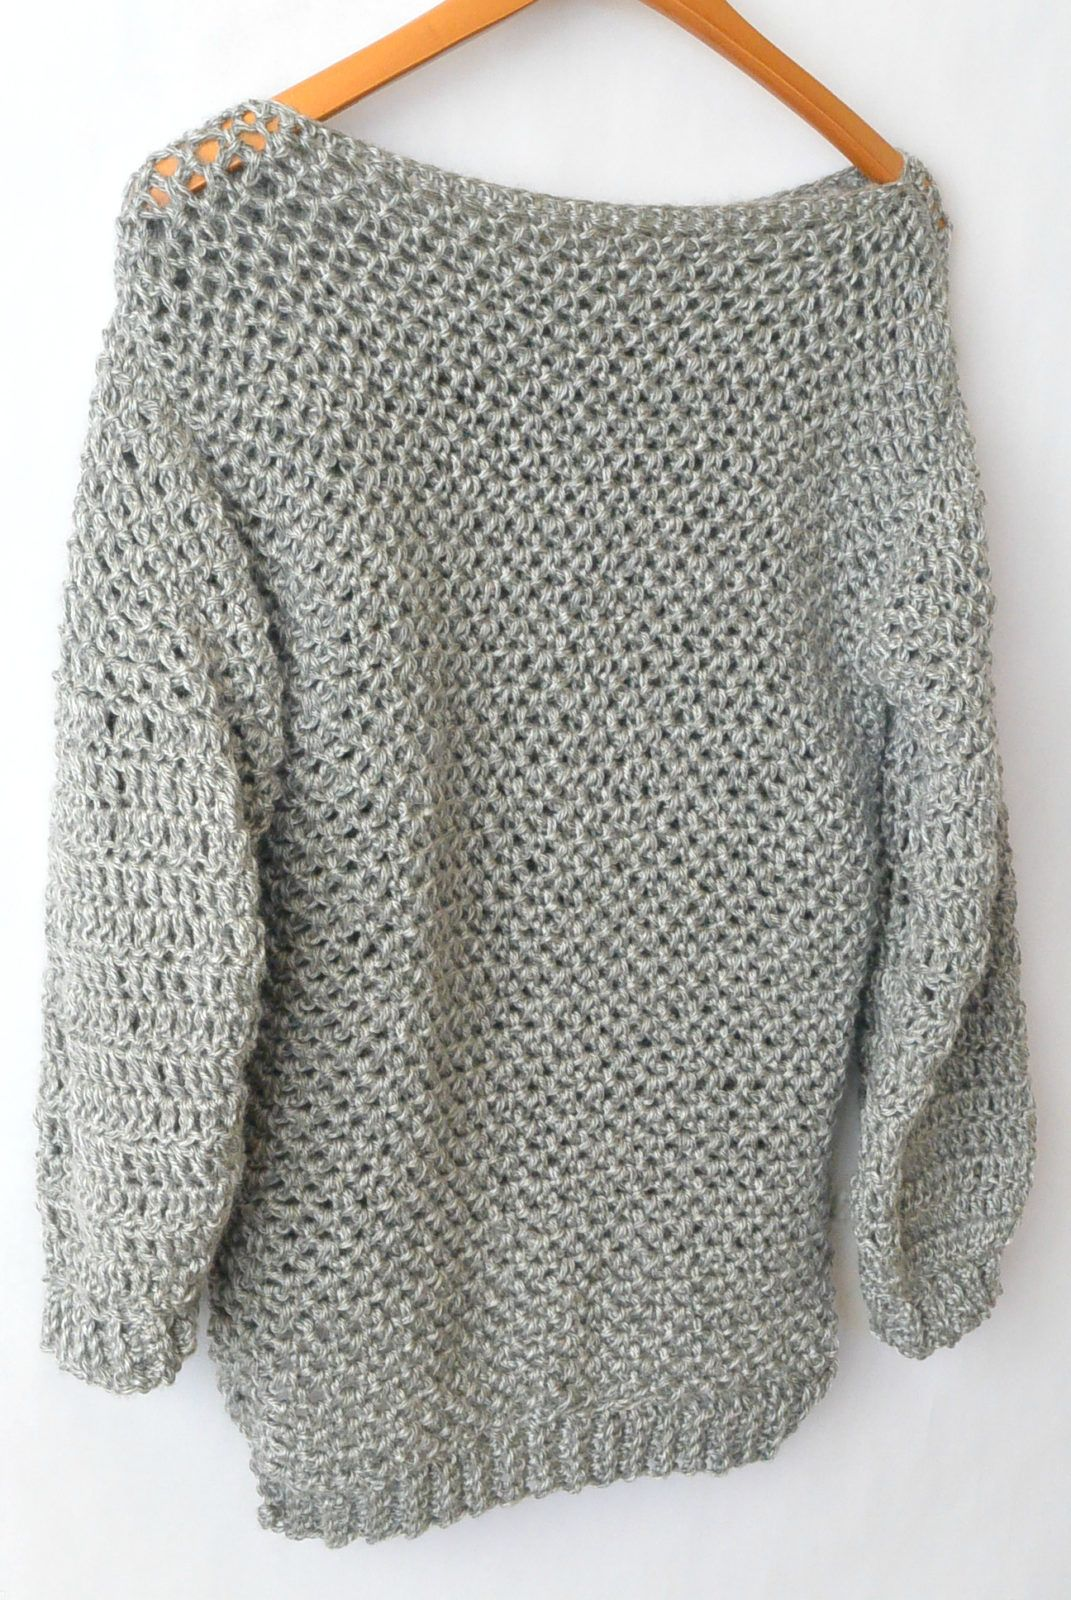 How To Make An Easy Crocheted Sweater Knit Like